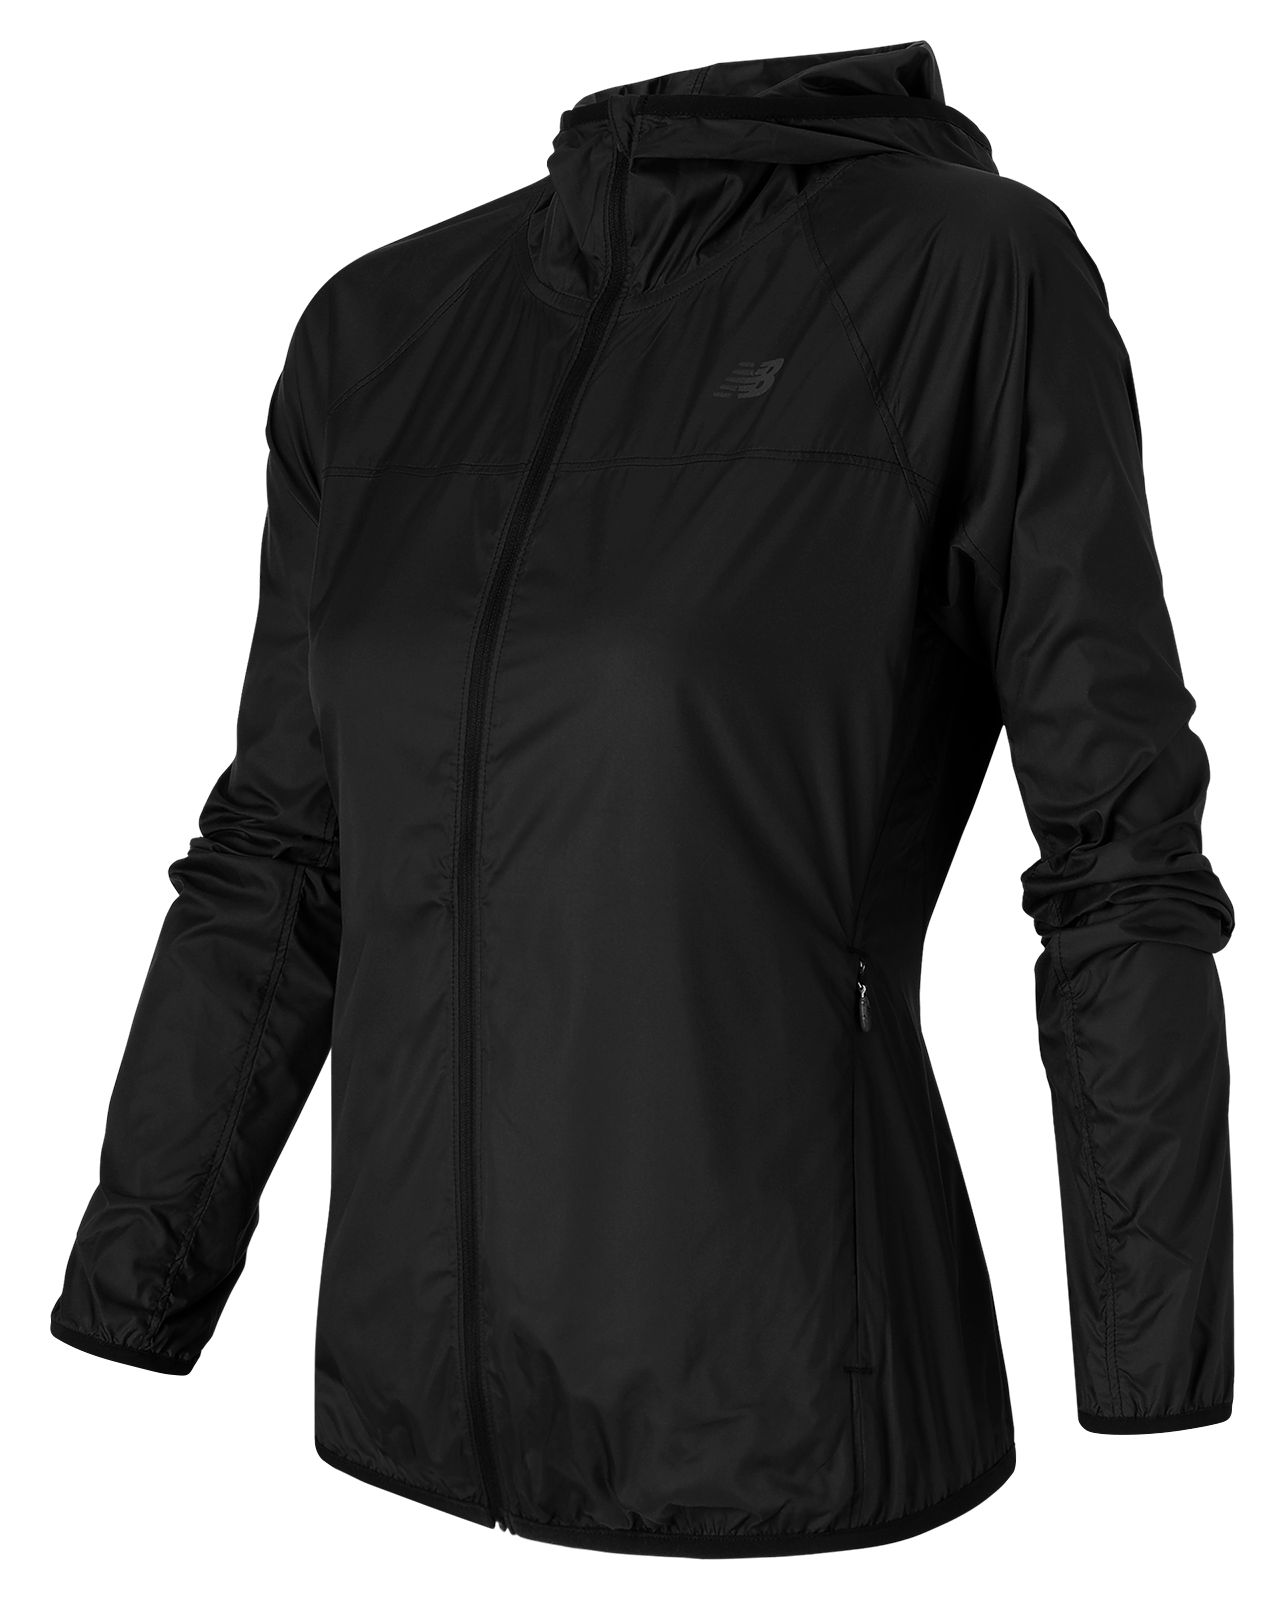 New Balance : Windcheater Jacket : Women's Apparel : WJ53111BK